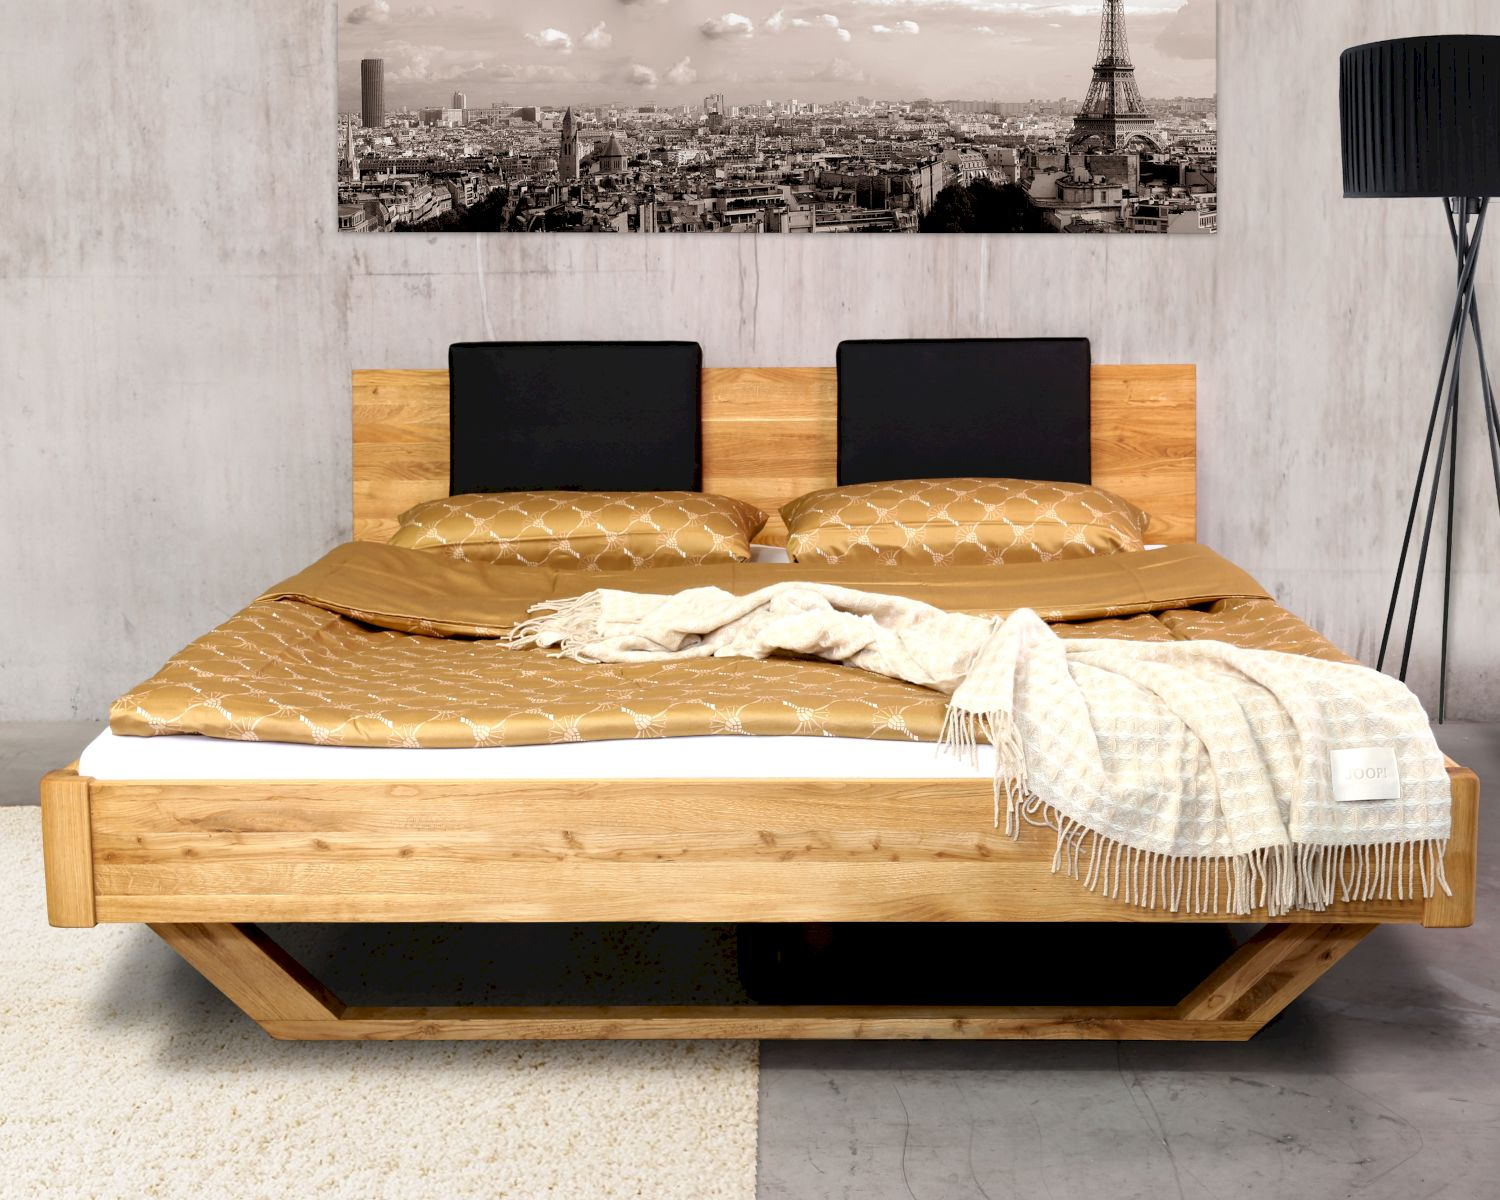 massivholz dolce vita wildeiche bett bei. Black Bedroom Furniture Sets. Home Design Ideas